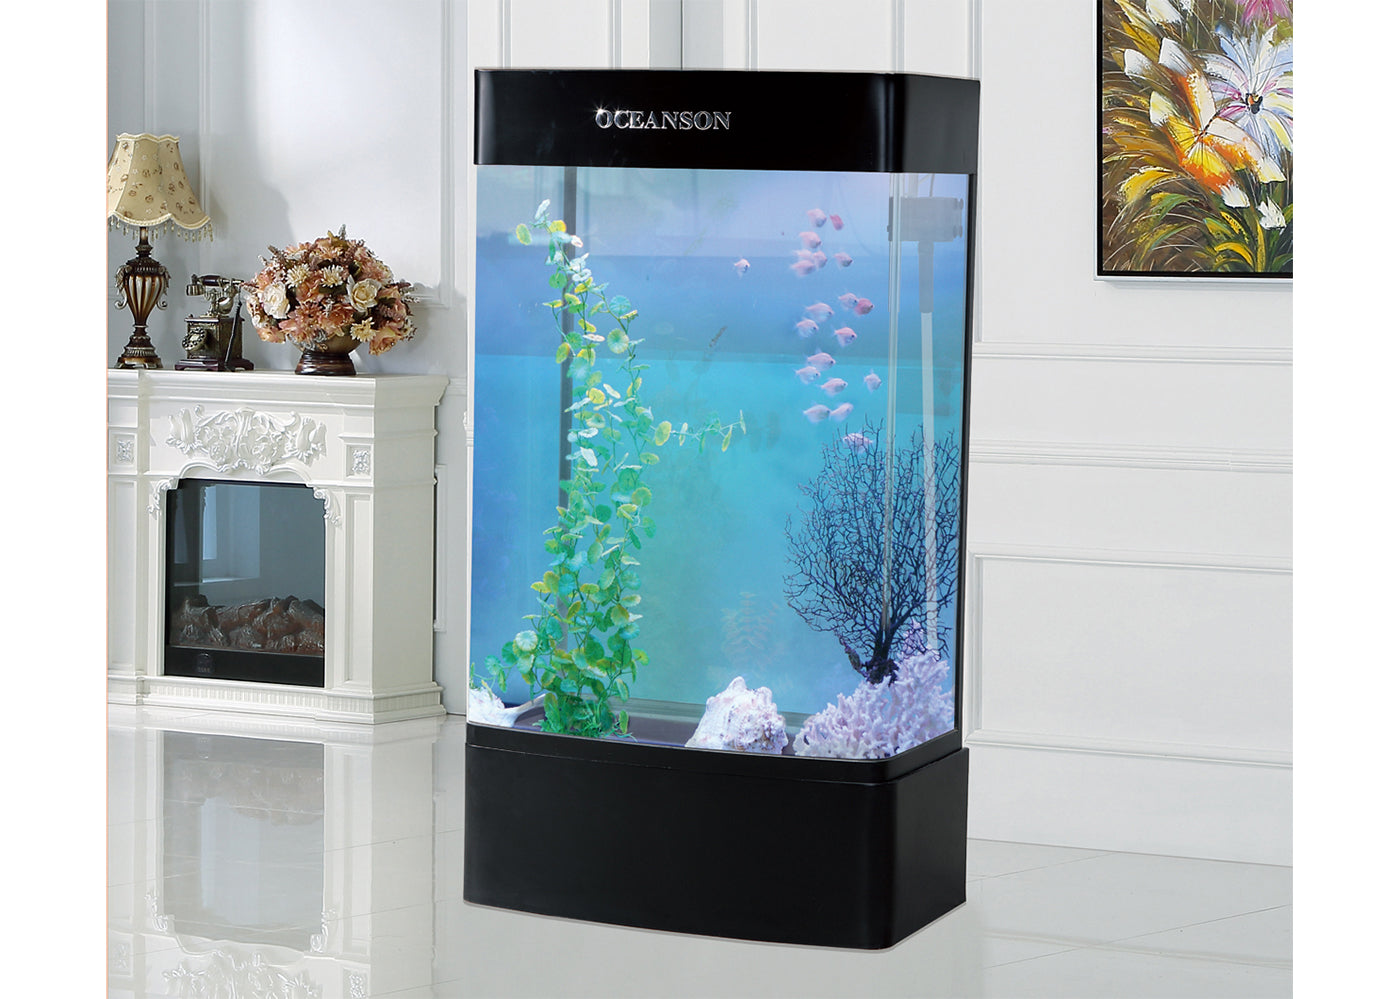 Oceanson GHH150 - 150cm Curved Face Tall Aquarium and Base